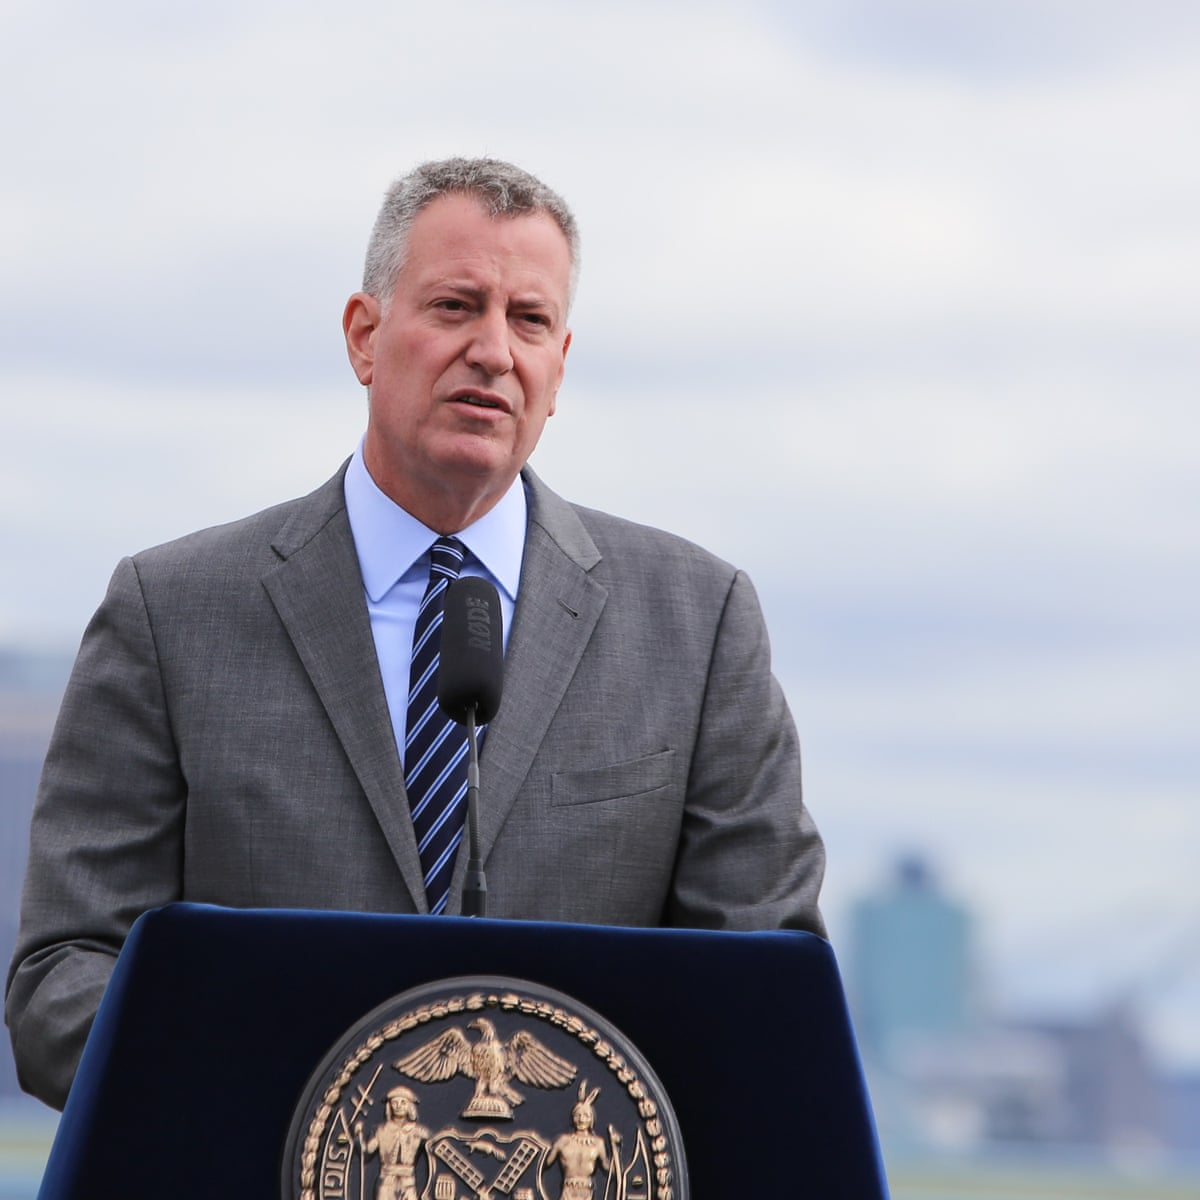 New York City to give its residents $100 to get Convid 19 vaccination, starting this Friday